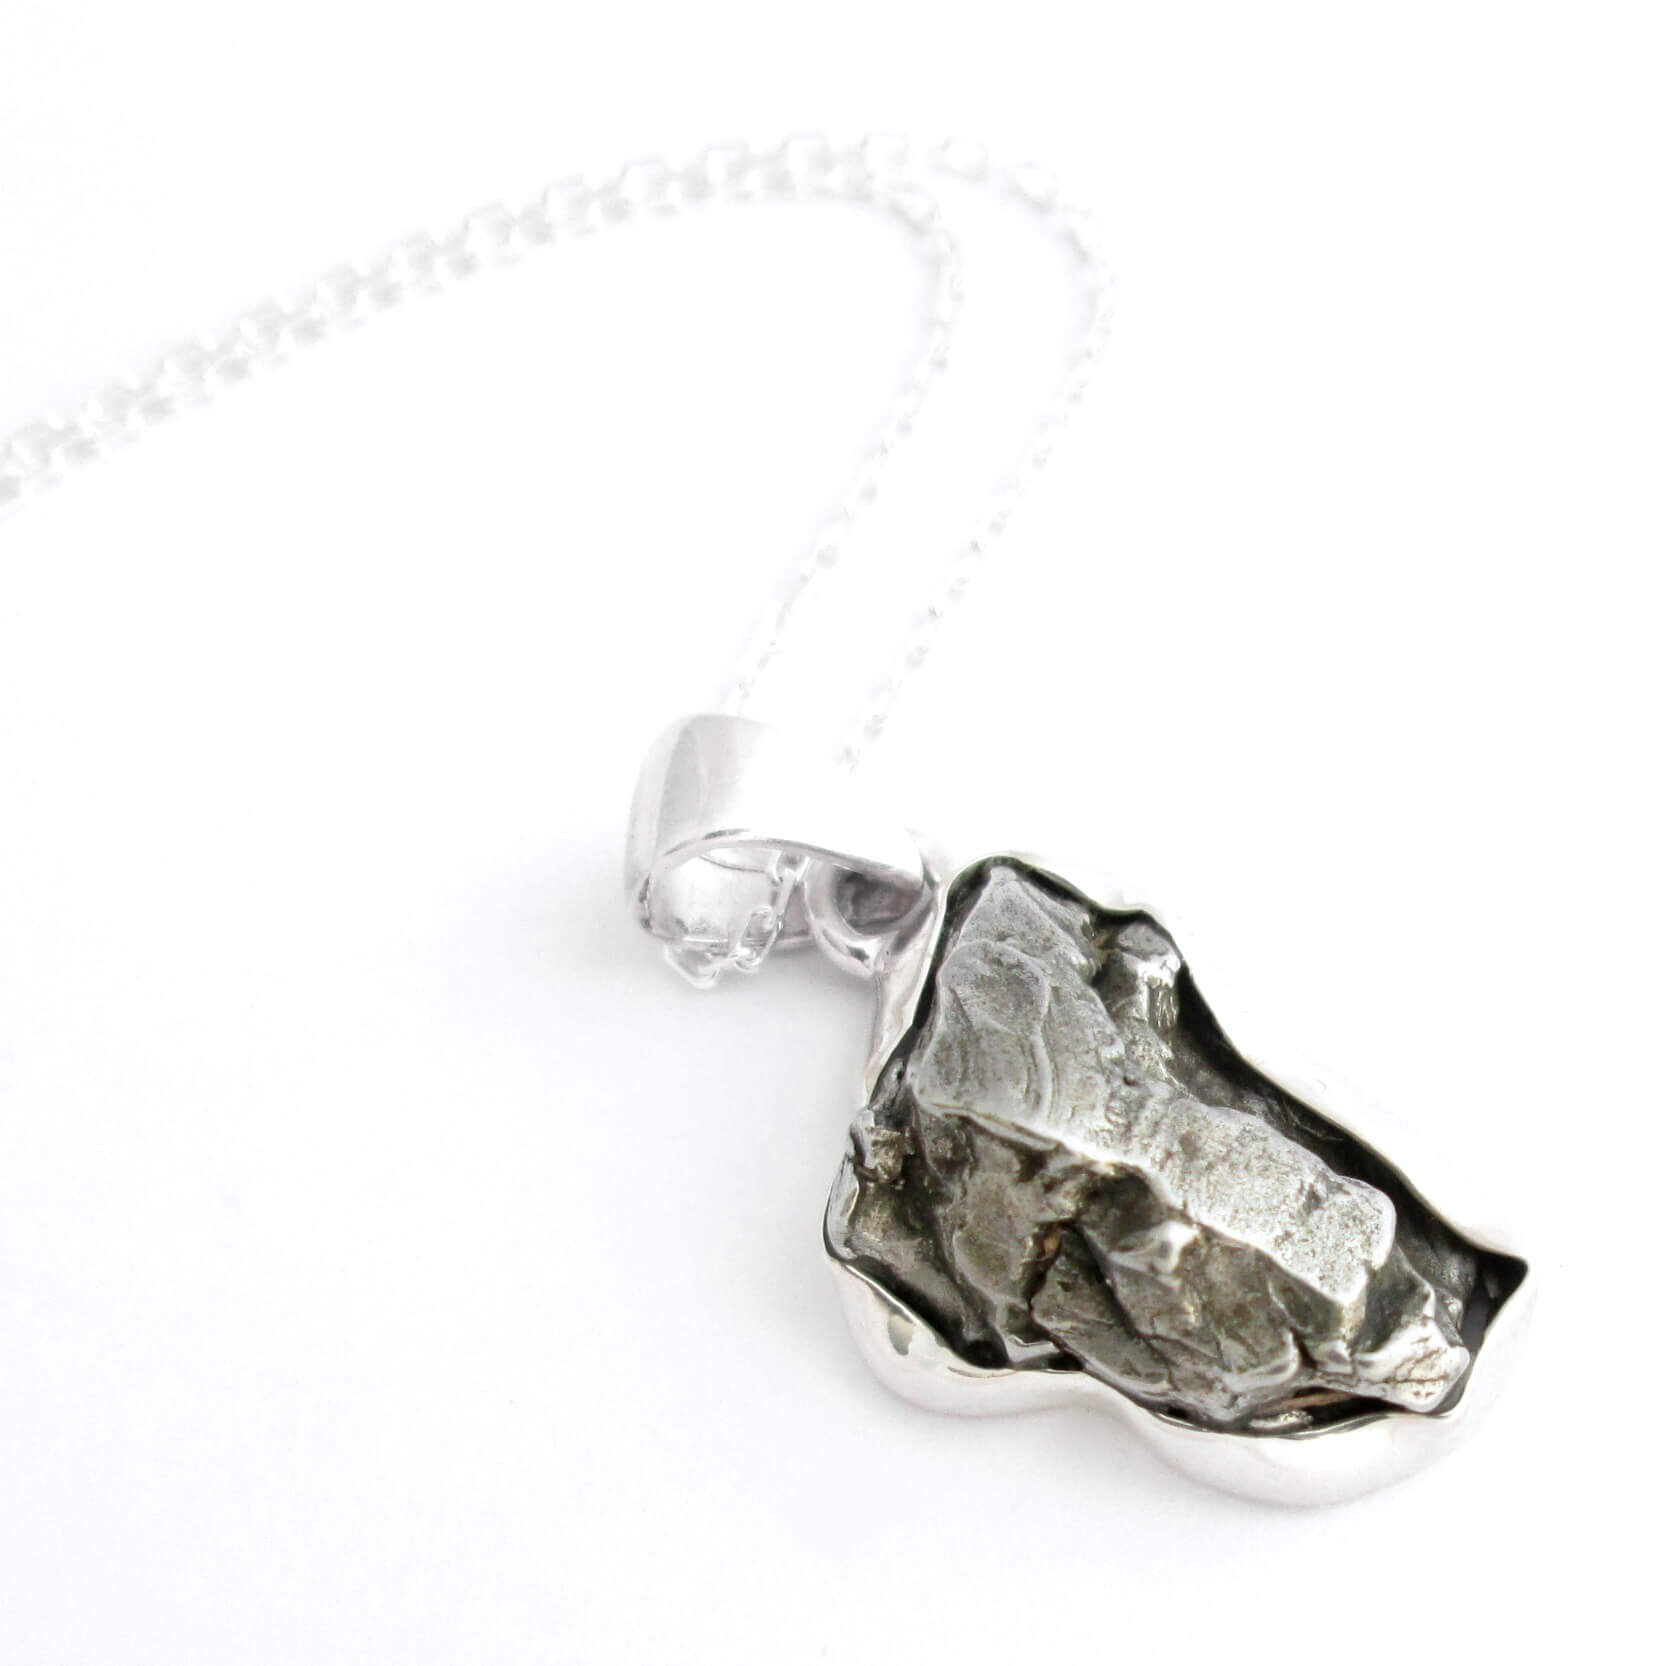 Campo del Cielo Meteorite Pendant 26.08 grams a unique Triangular shape and a gift from the cosmos